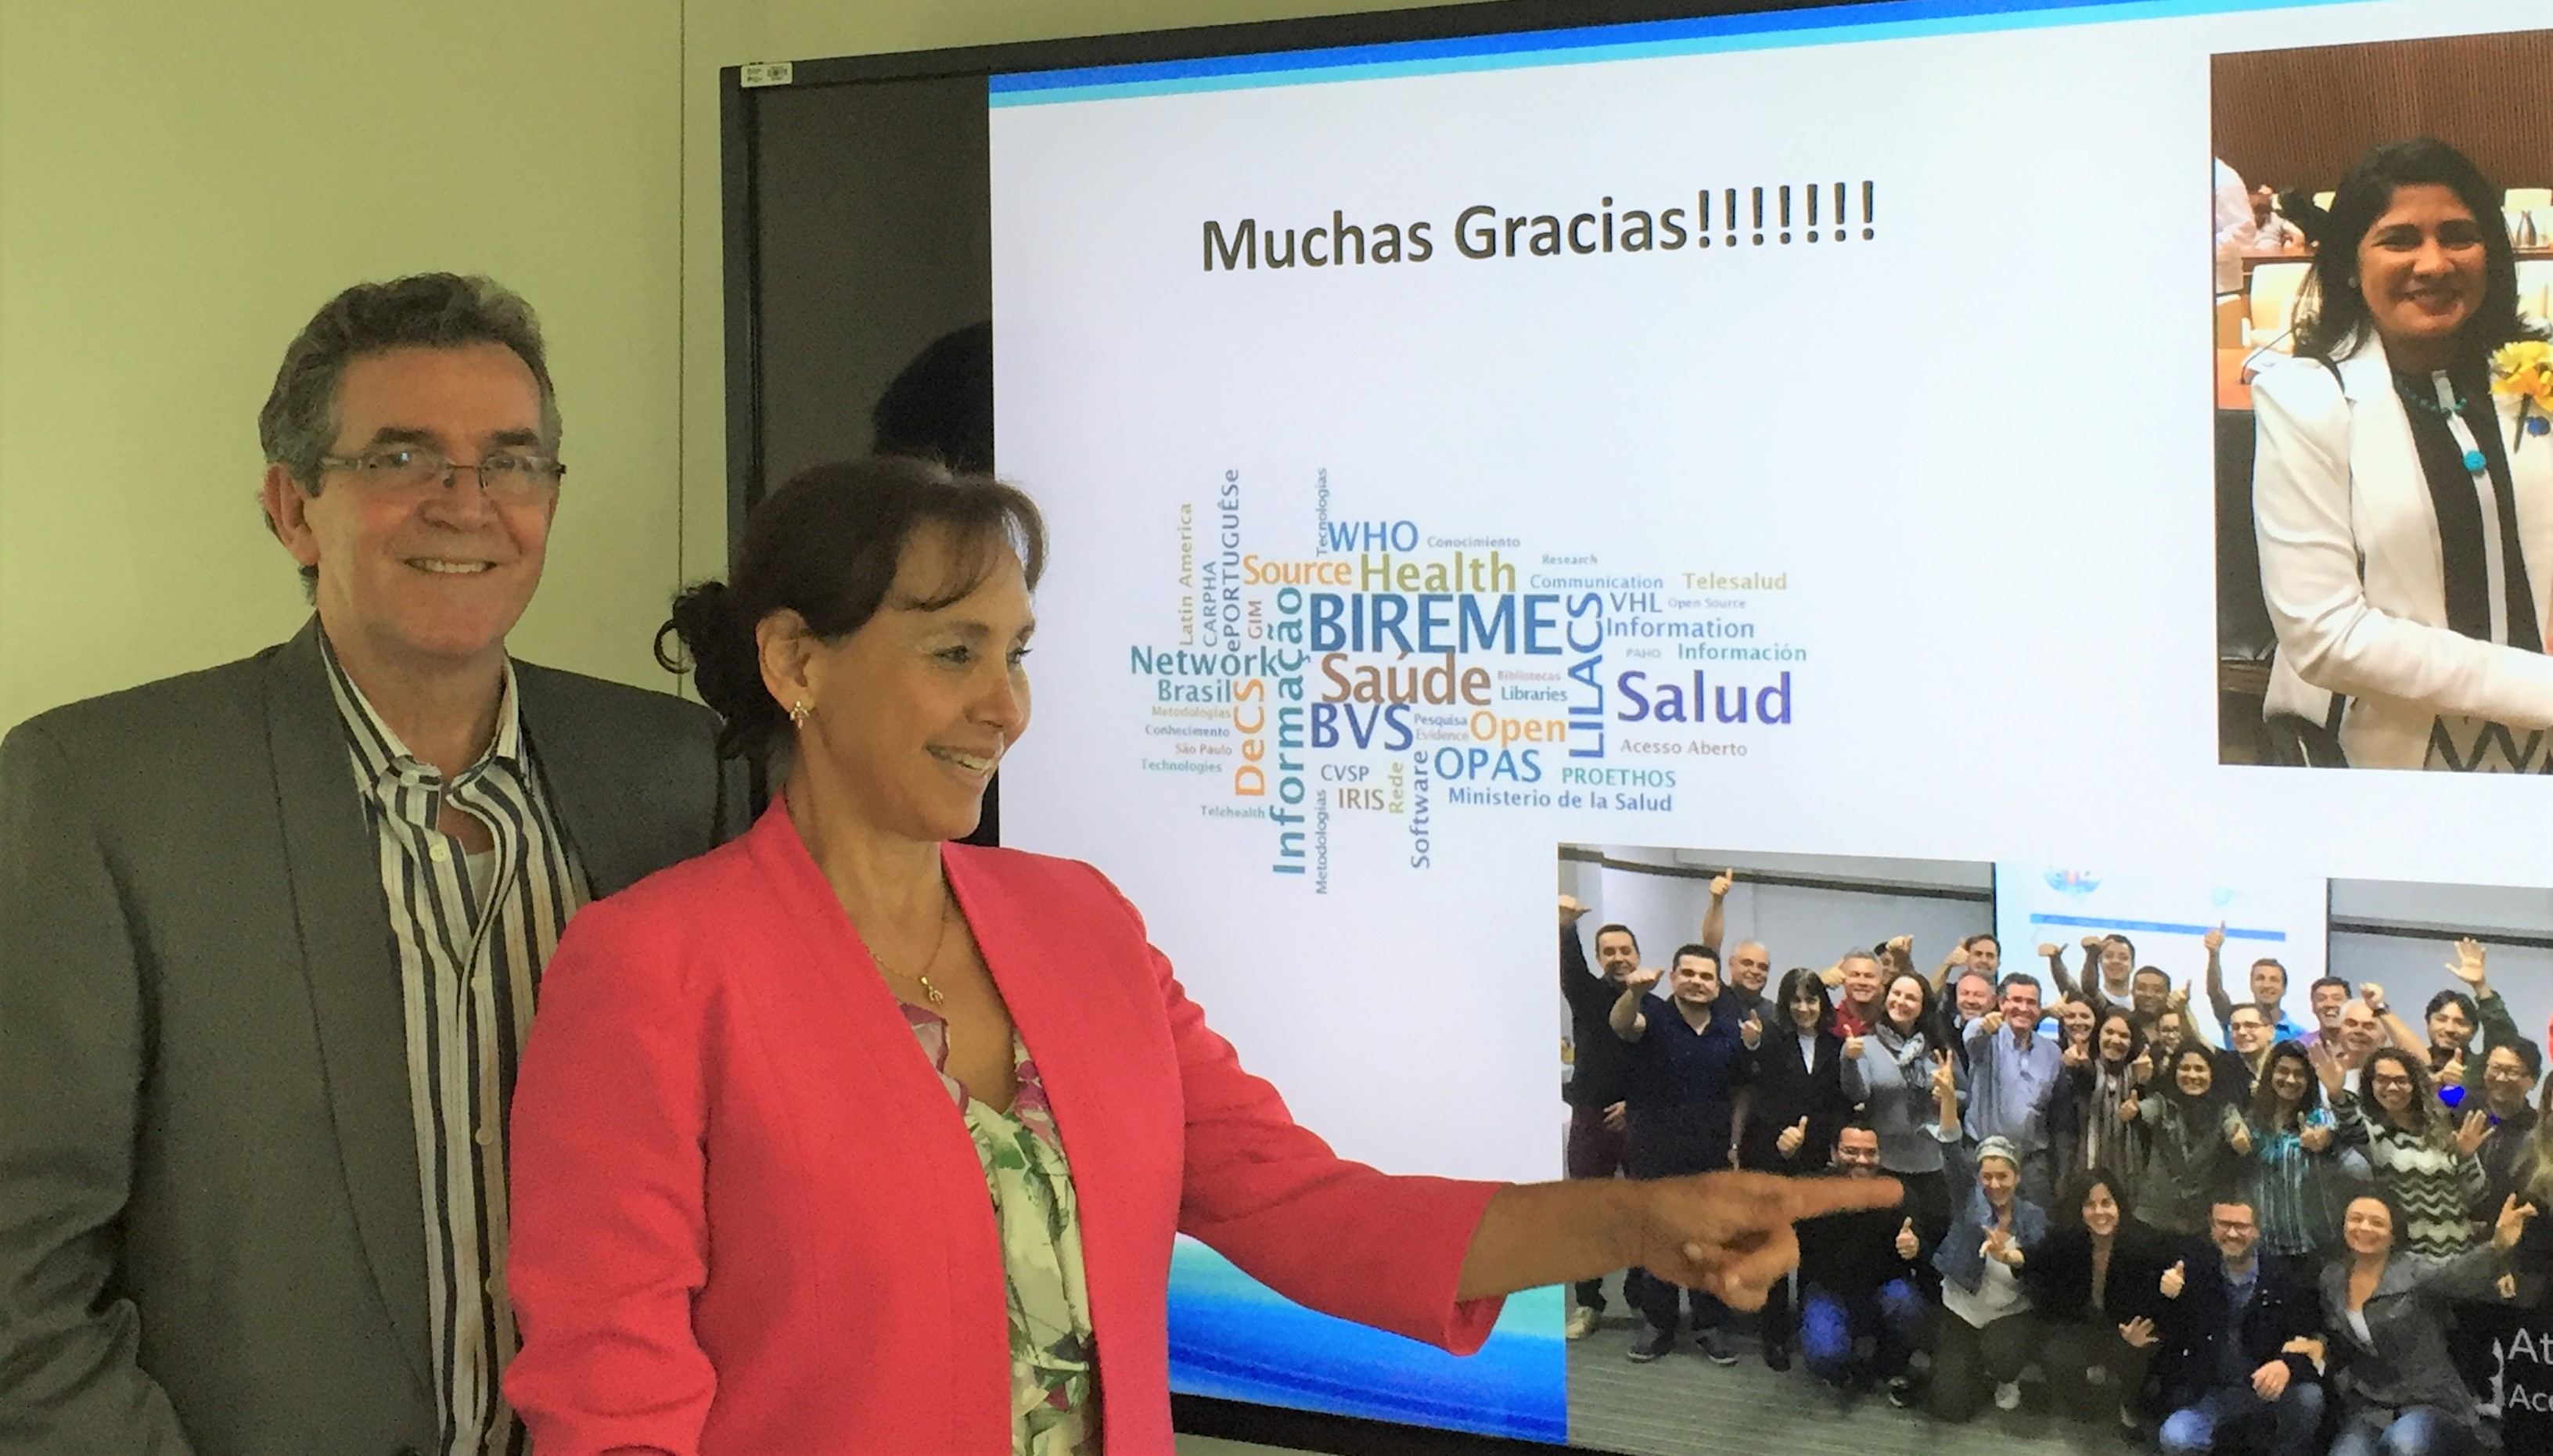 dr-gross-and-dr-gonzalez-discuss-collaboration-between-pahowho-brazil-and-bireme